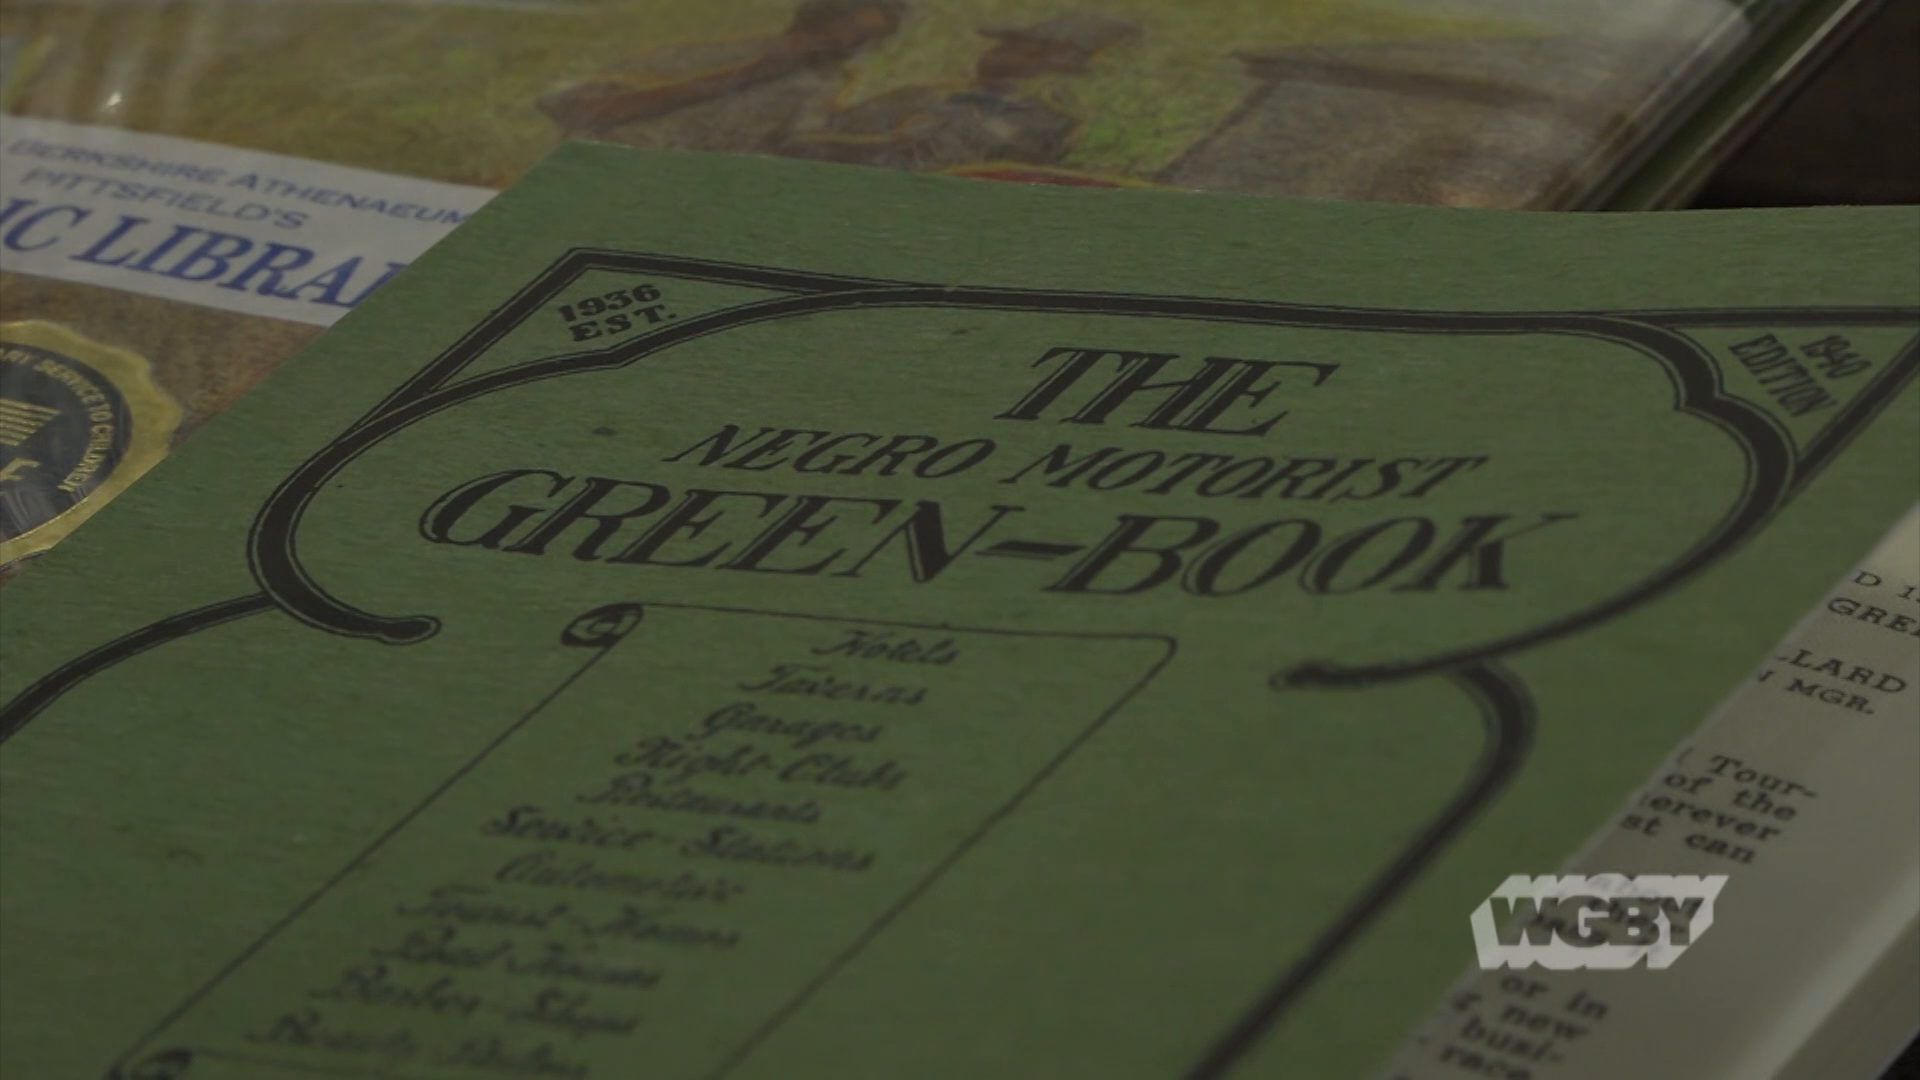 Explore the local impact and complicated legacy of The Green Book, a travel guide for African American travelers in the Jim Crow era.